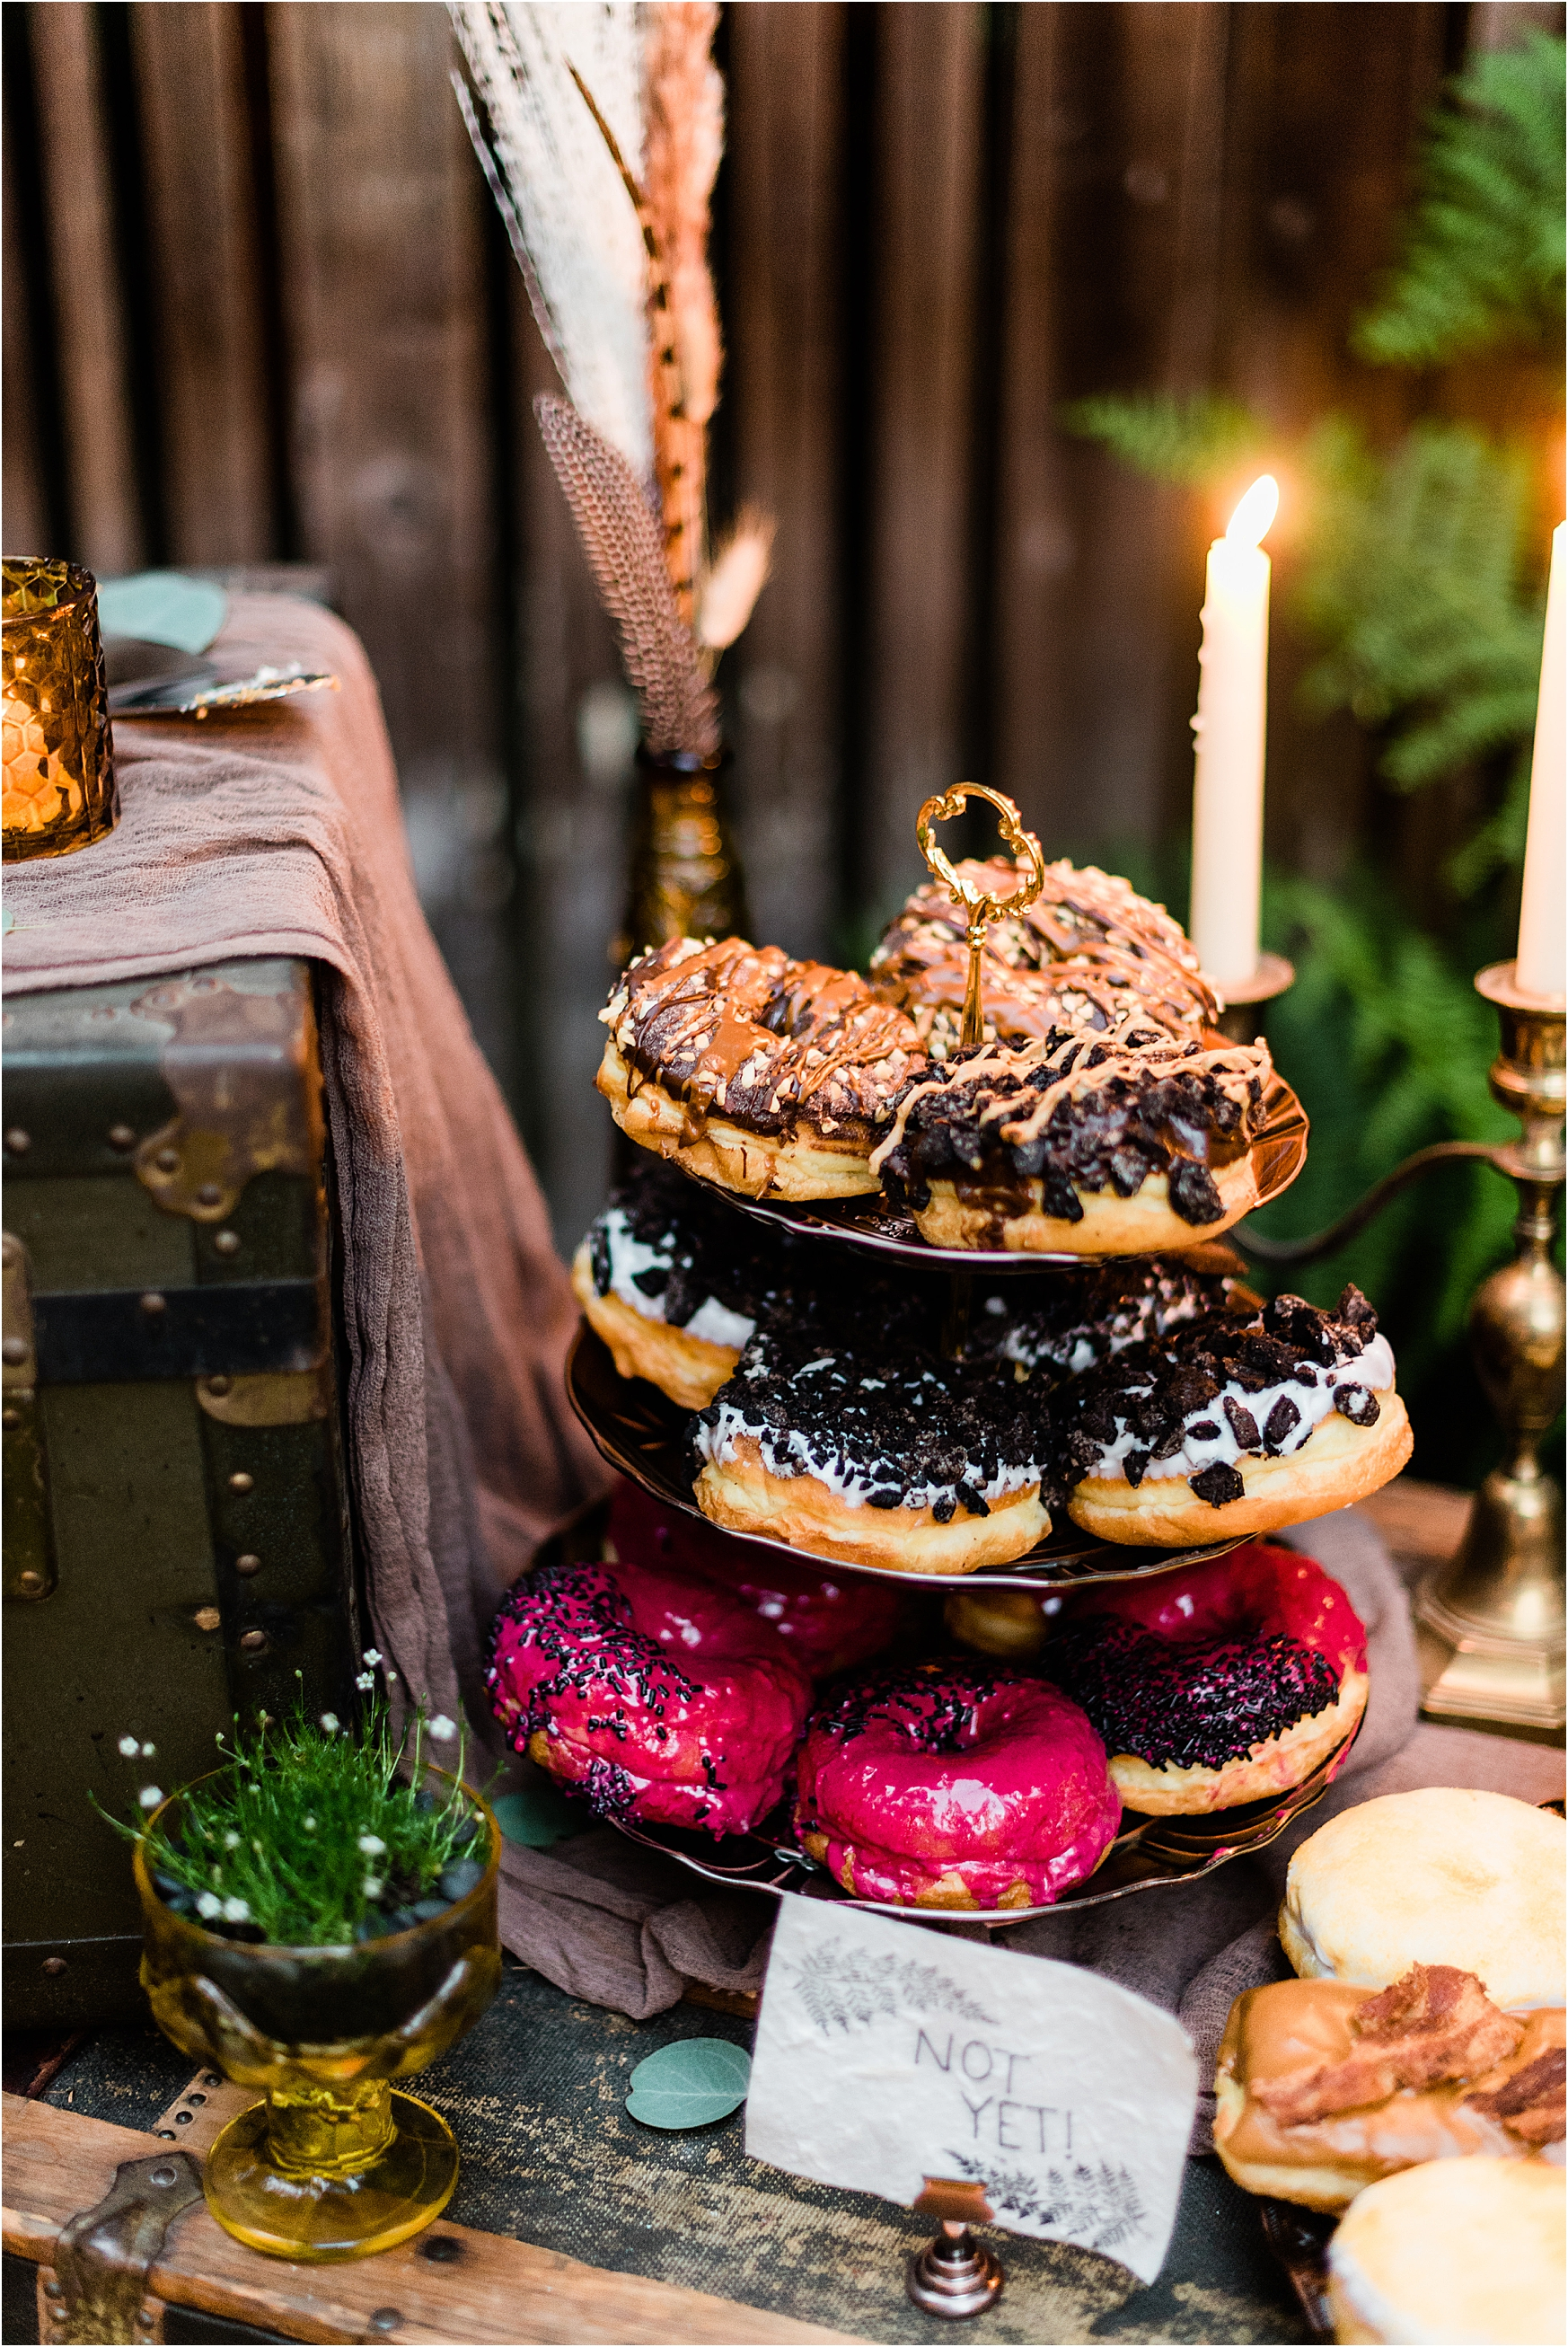 Voodoo Doughnuts at Cassy & Viva's bohemian Oregon destination wedding at Camp Lane. Image by Forthright Photo.